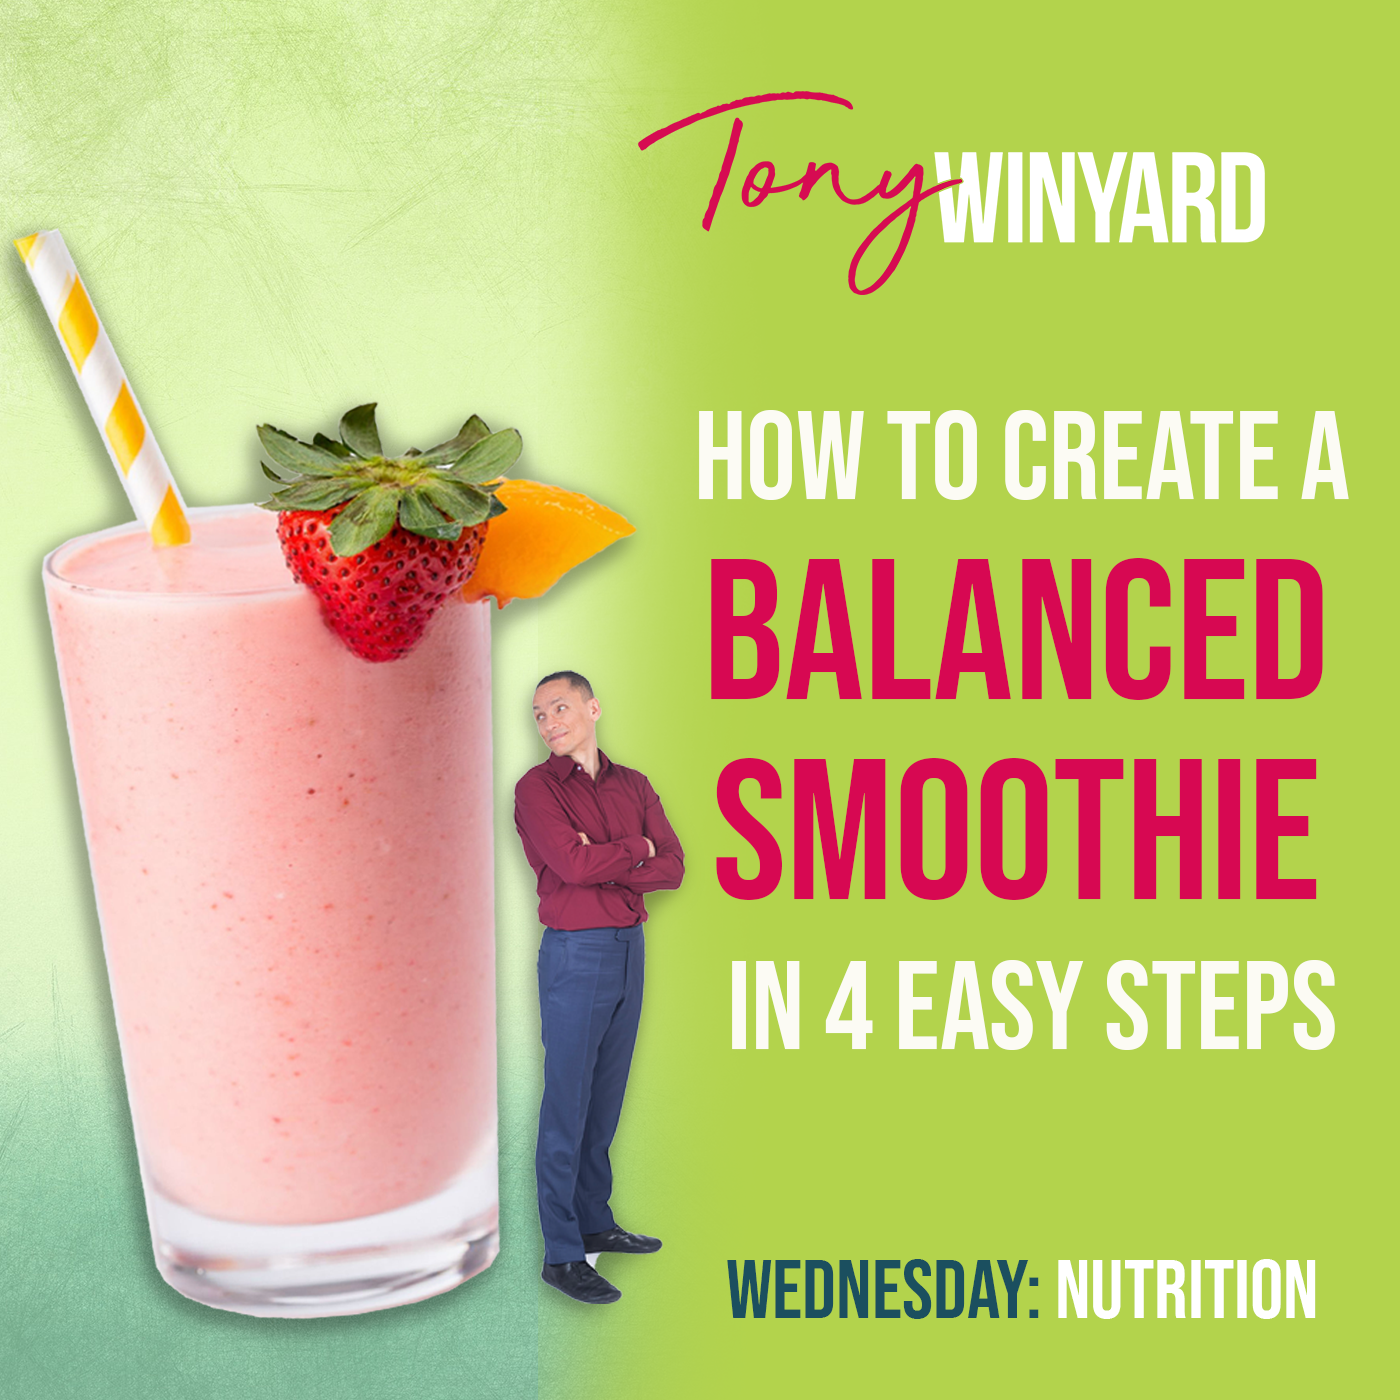 How to create a balanced smoothie in 4 easy steps